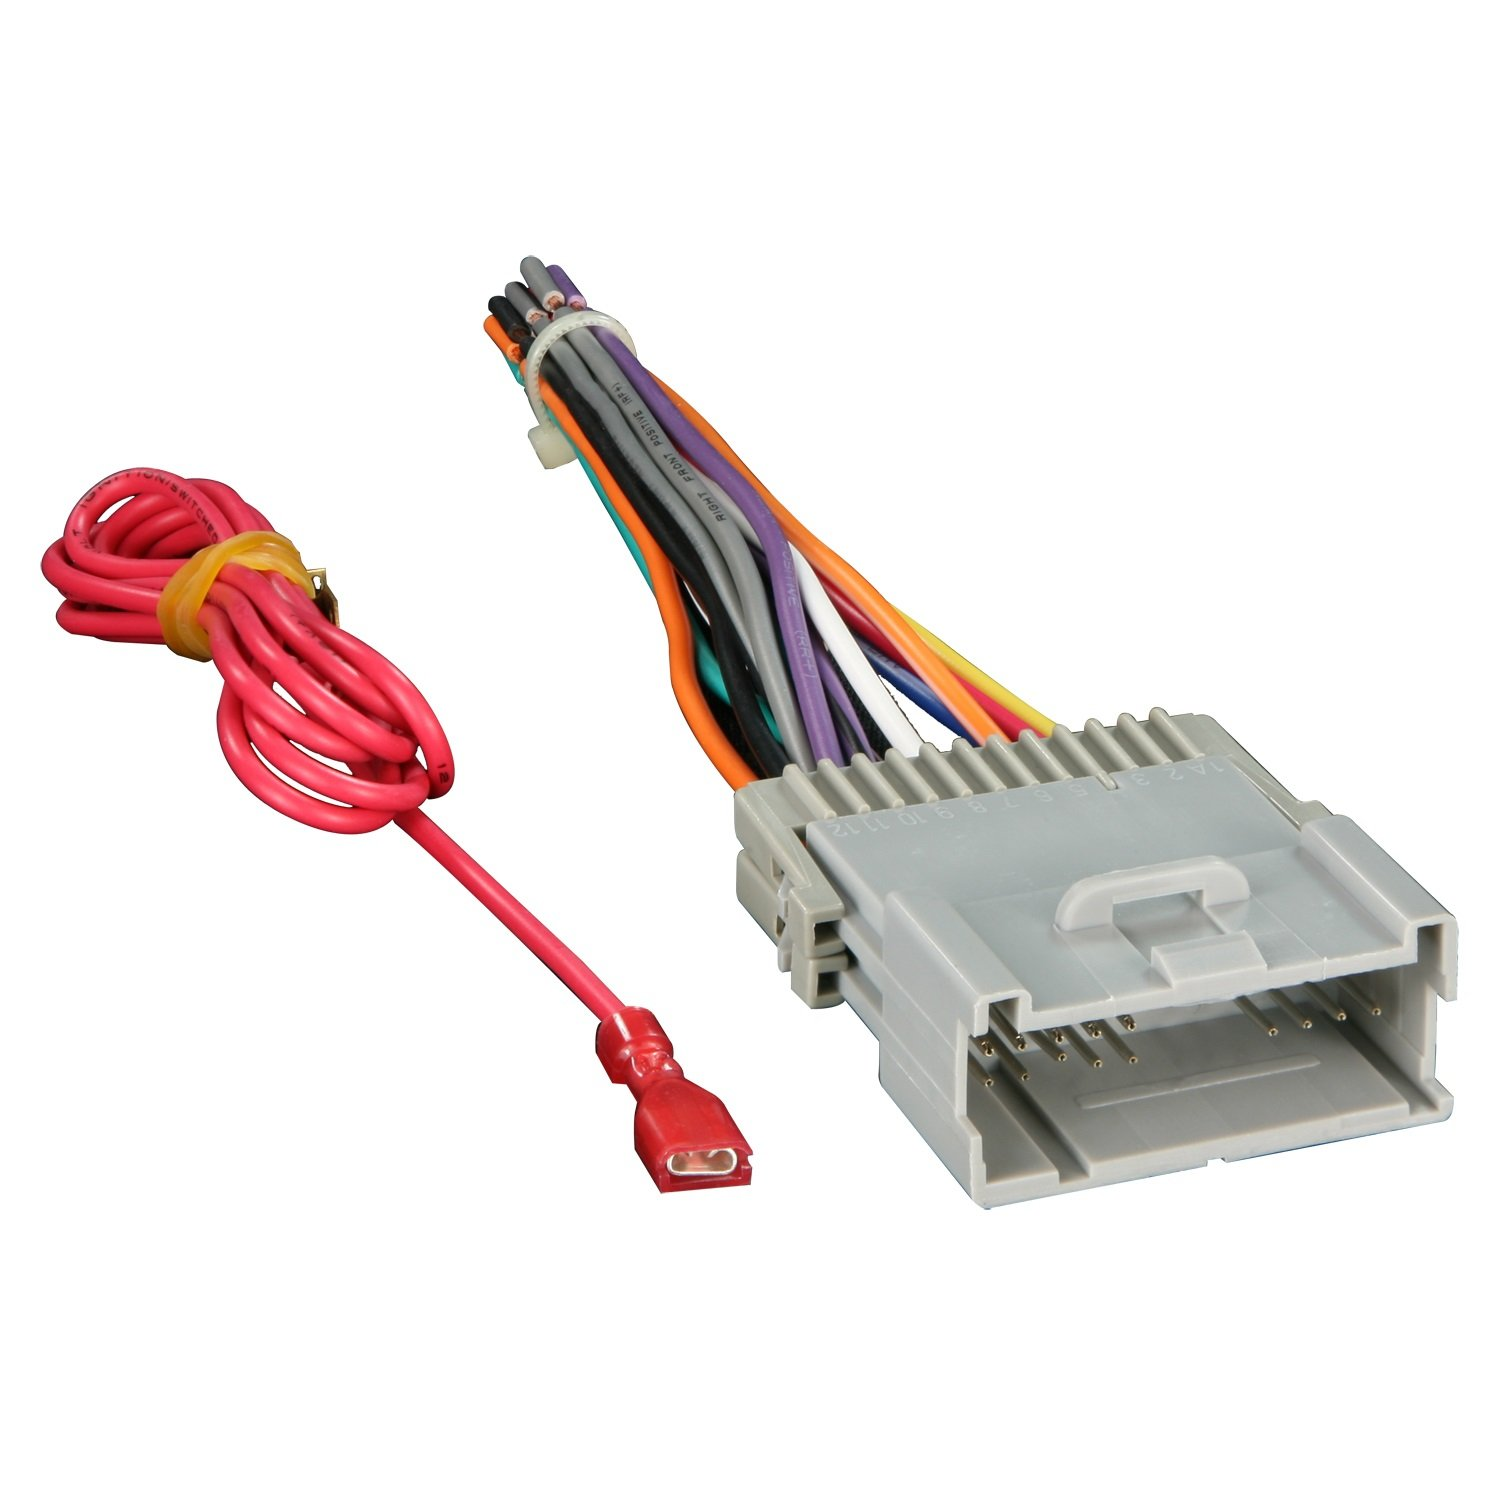 61eewxp9orL._SL1500_ amazon com metra 70 2003 radio wiring harness for gm 98 08 jvc car stereo wiring harness adapter at gsmx.co